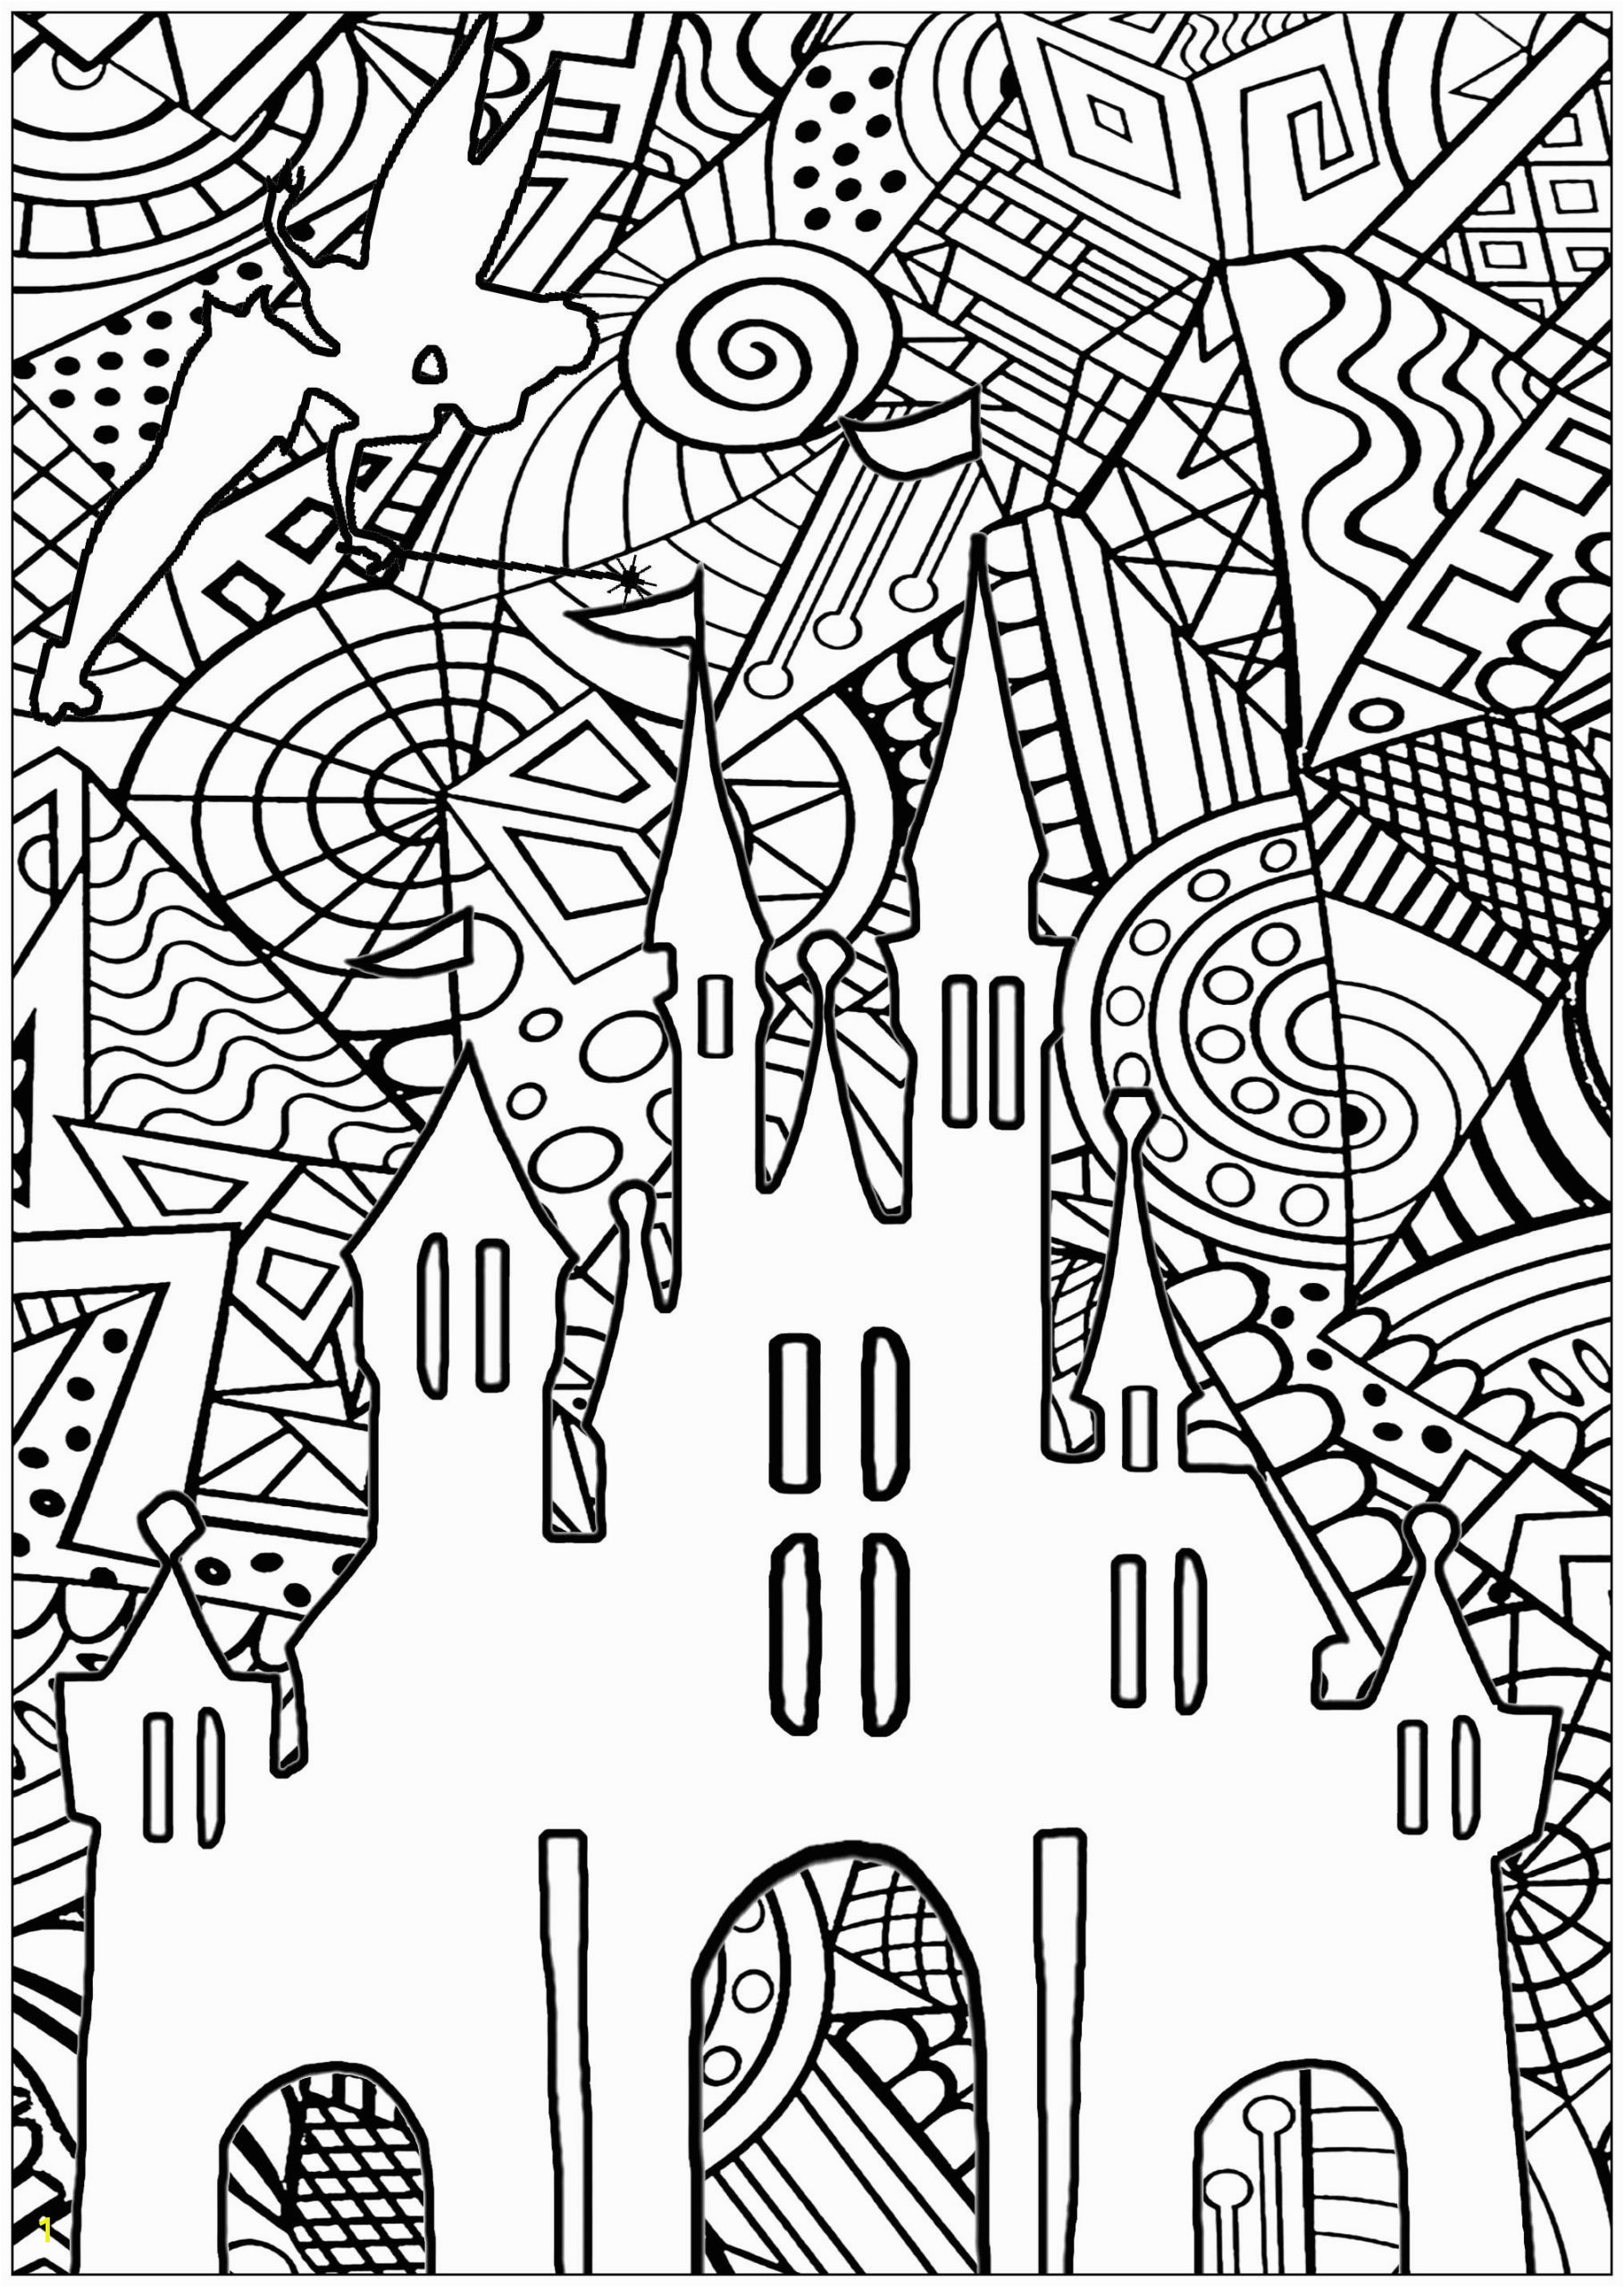 disney coloring sheets real fish pages adult themed books the witcher book amita trasi personalized wedding alphabet colouring beginner for adults ghost prodigal son page koi printable scaled